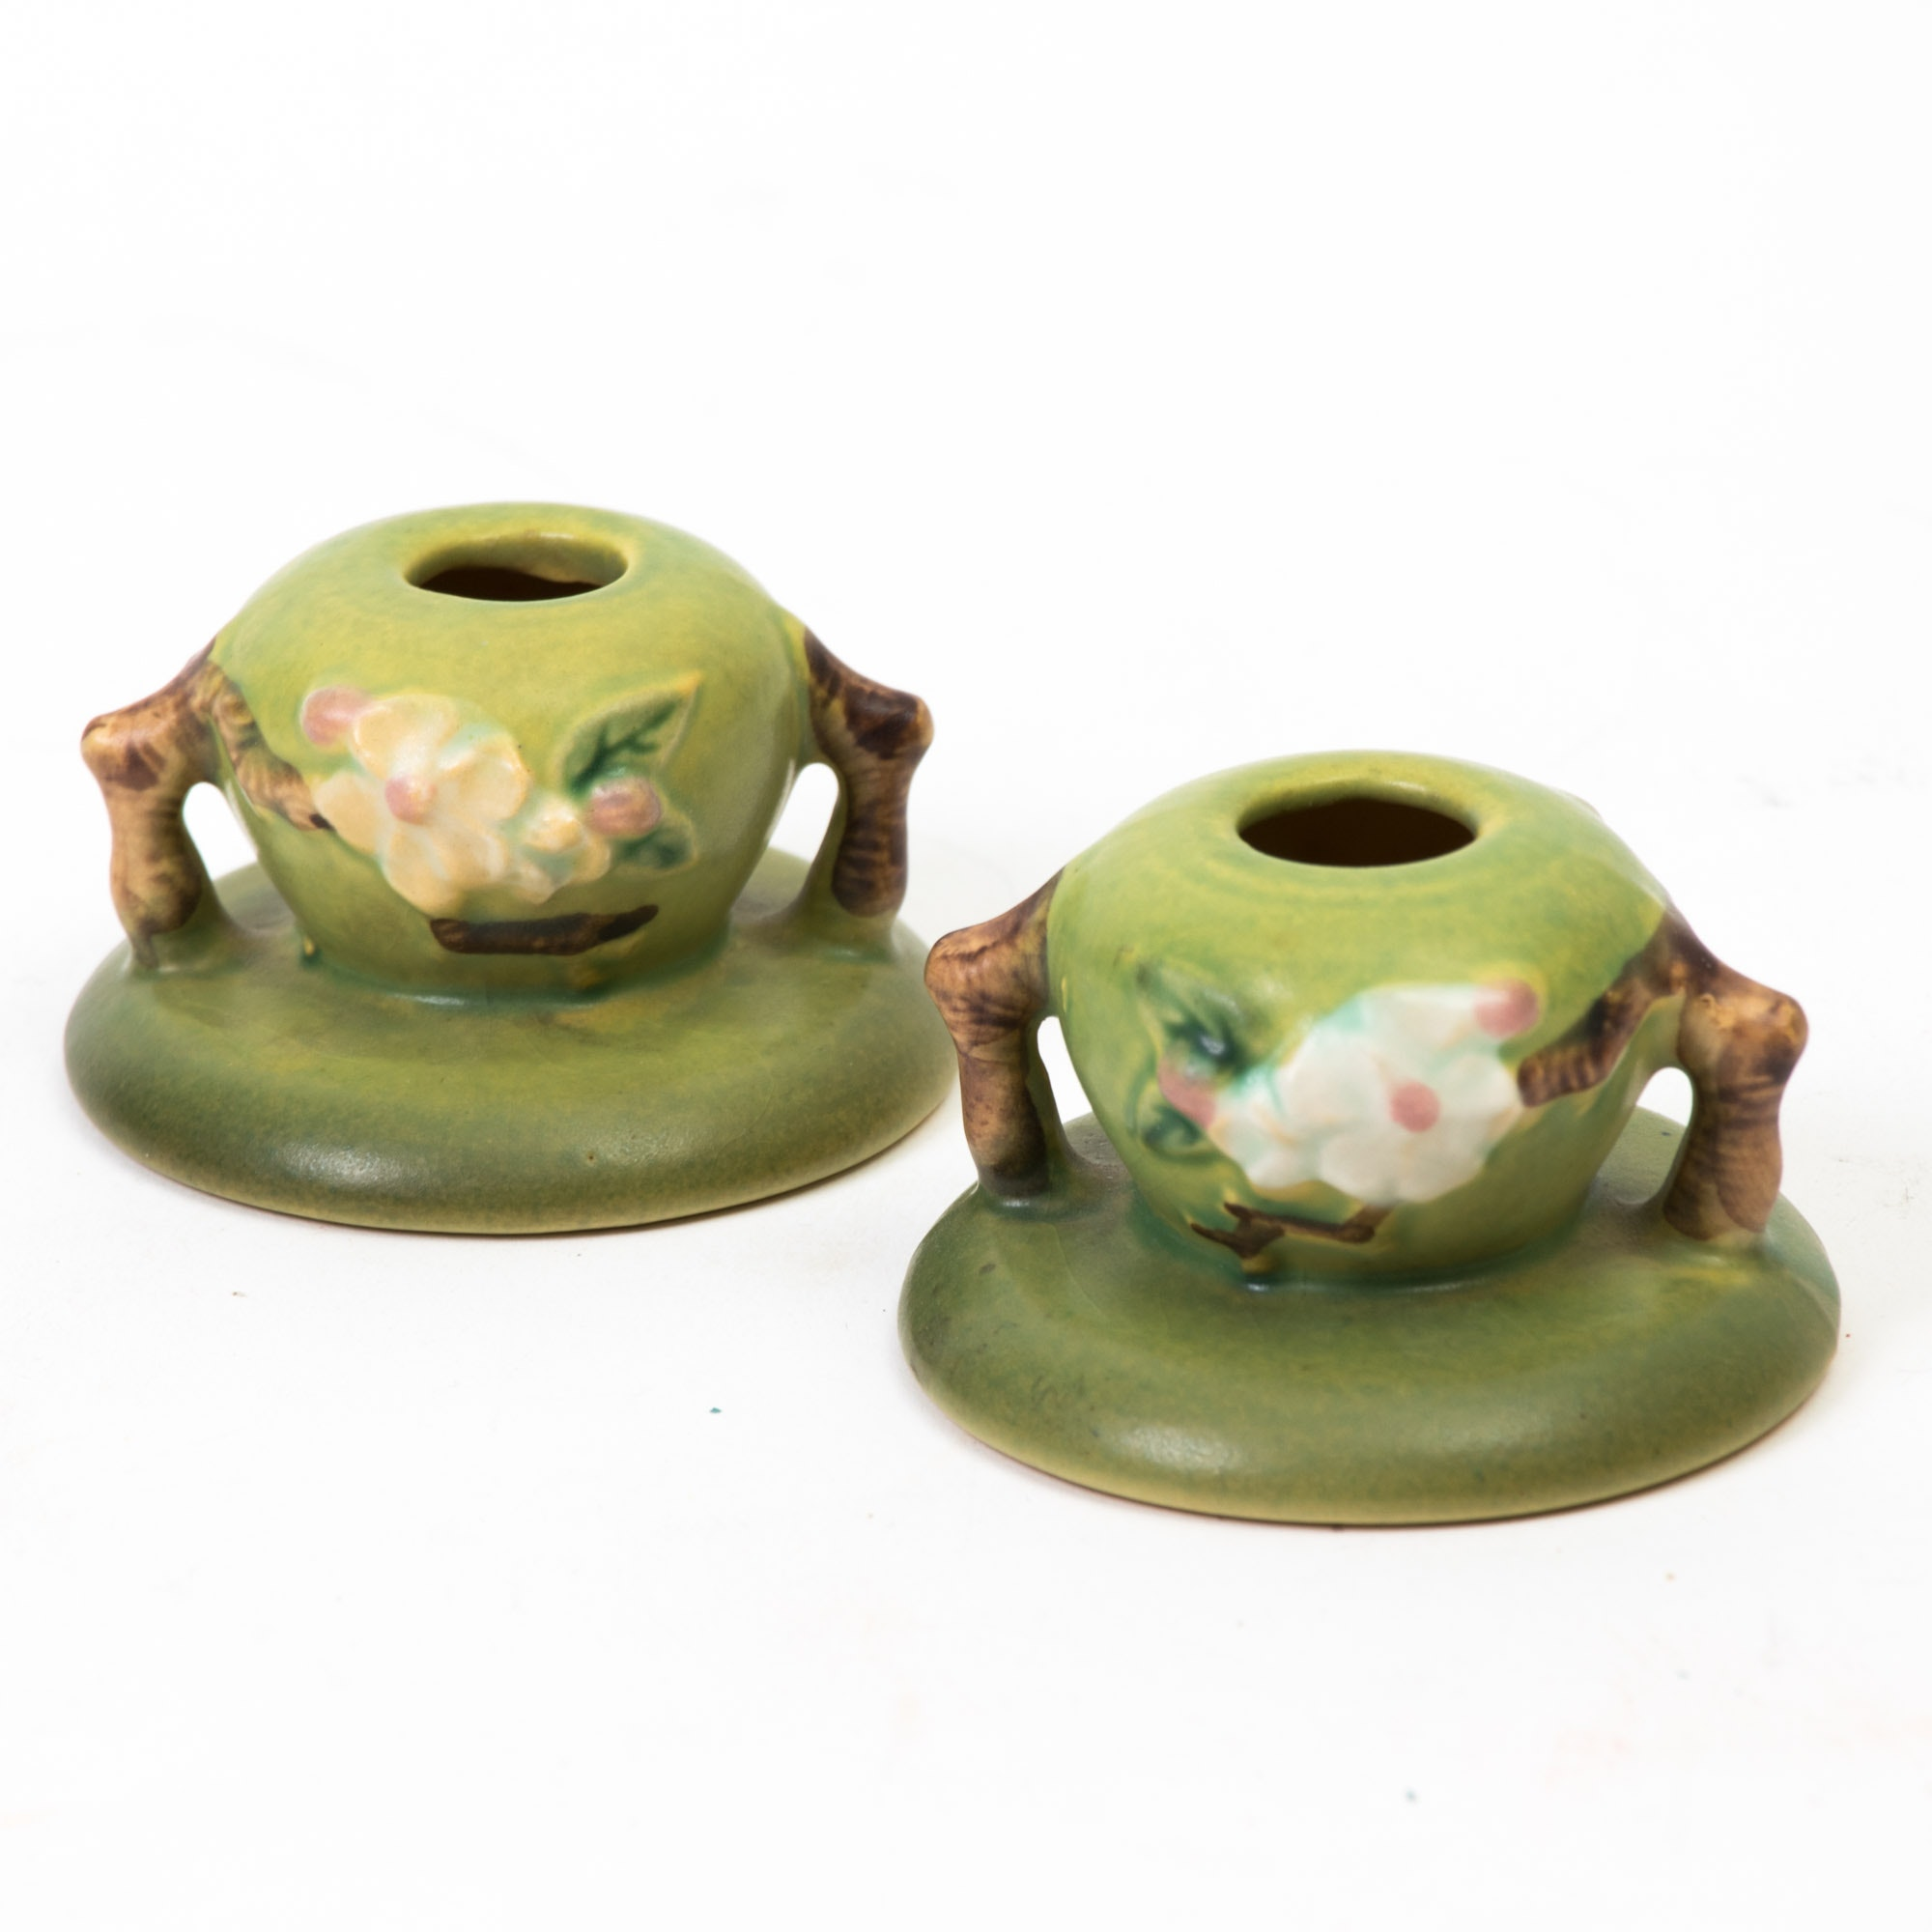 """Roseville Pottery """"Apple Blossom"""" Candle Holders"""